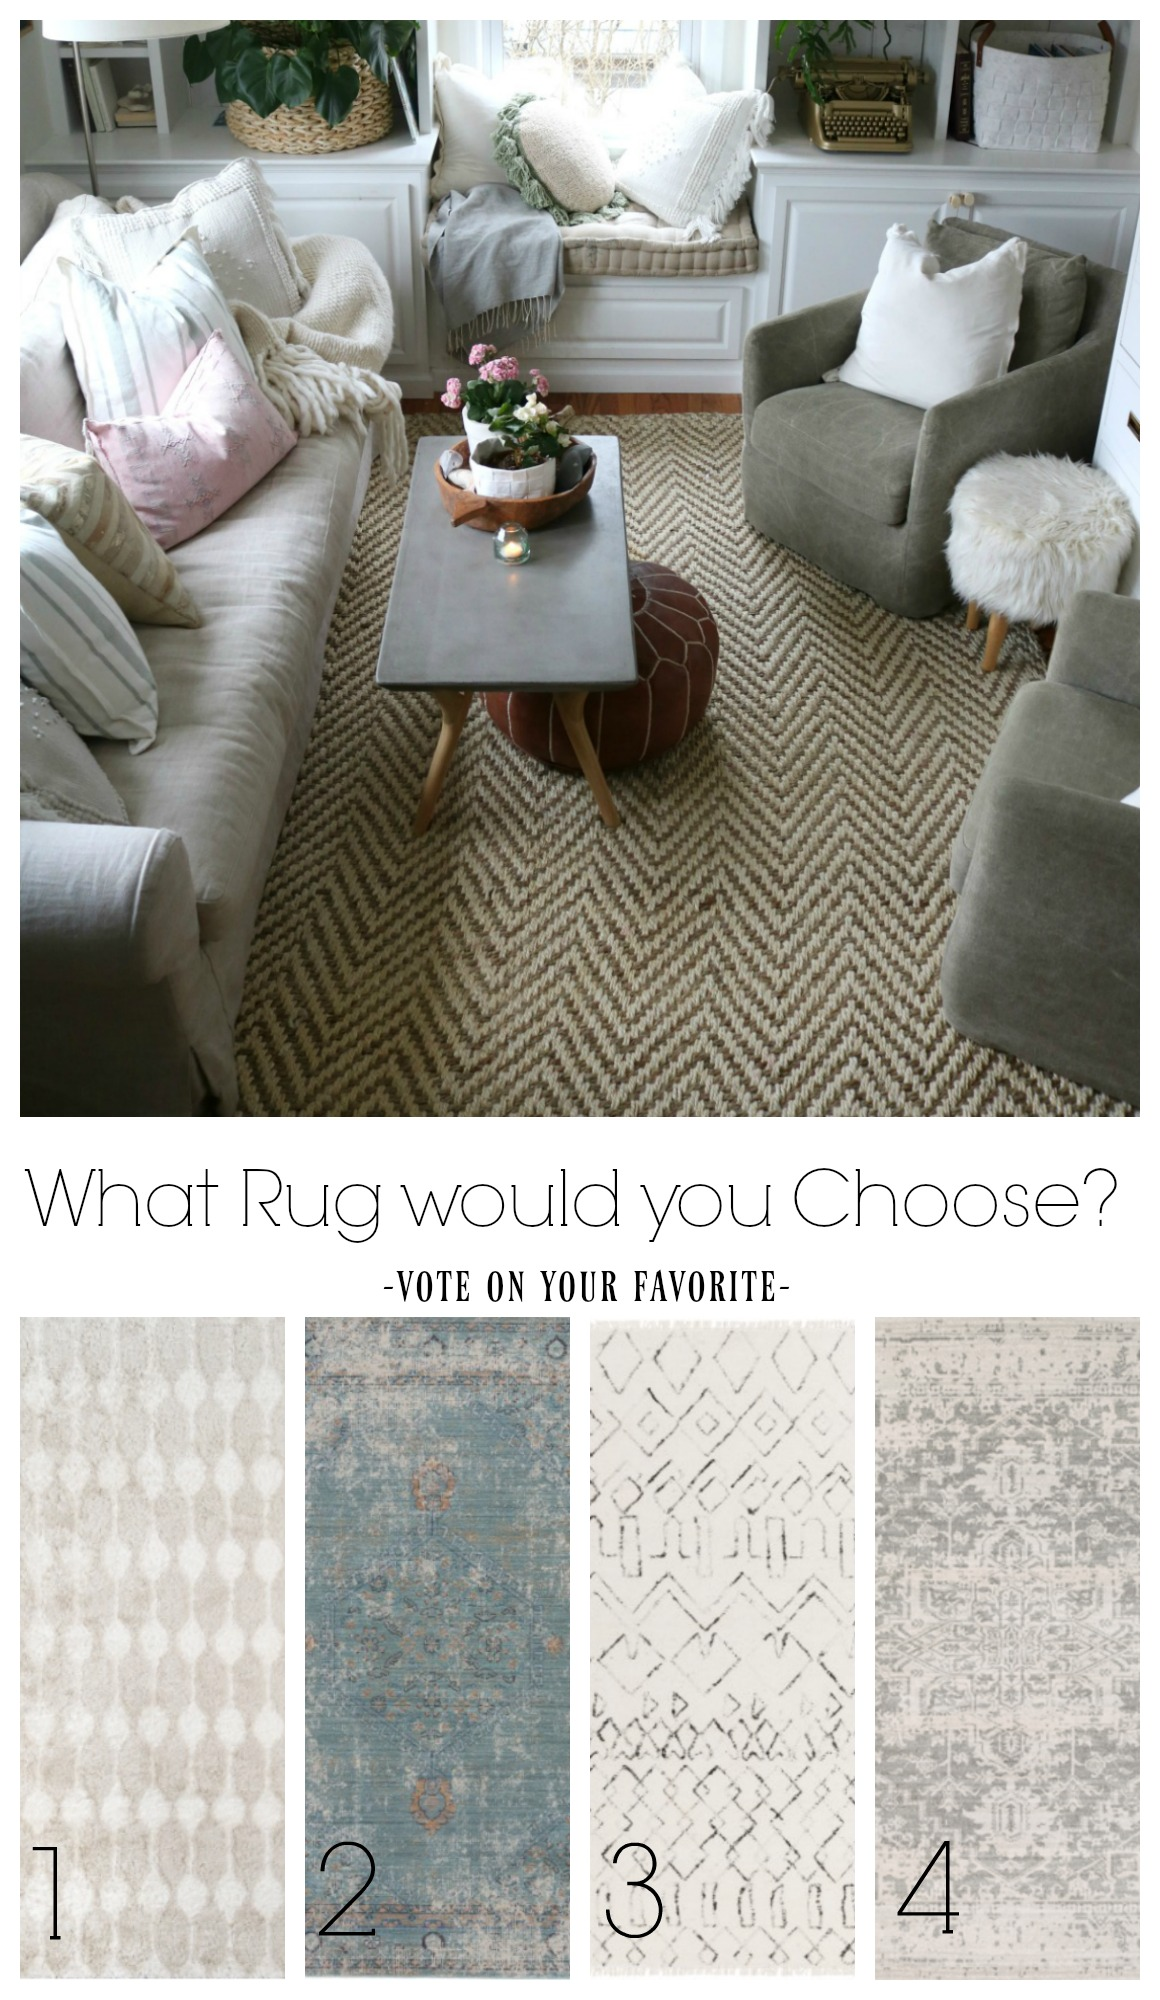 What Rug would you Choose?